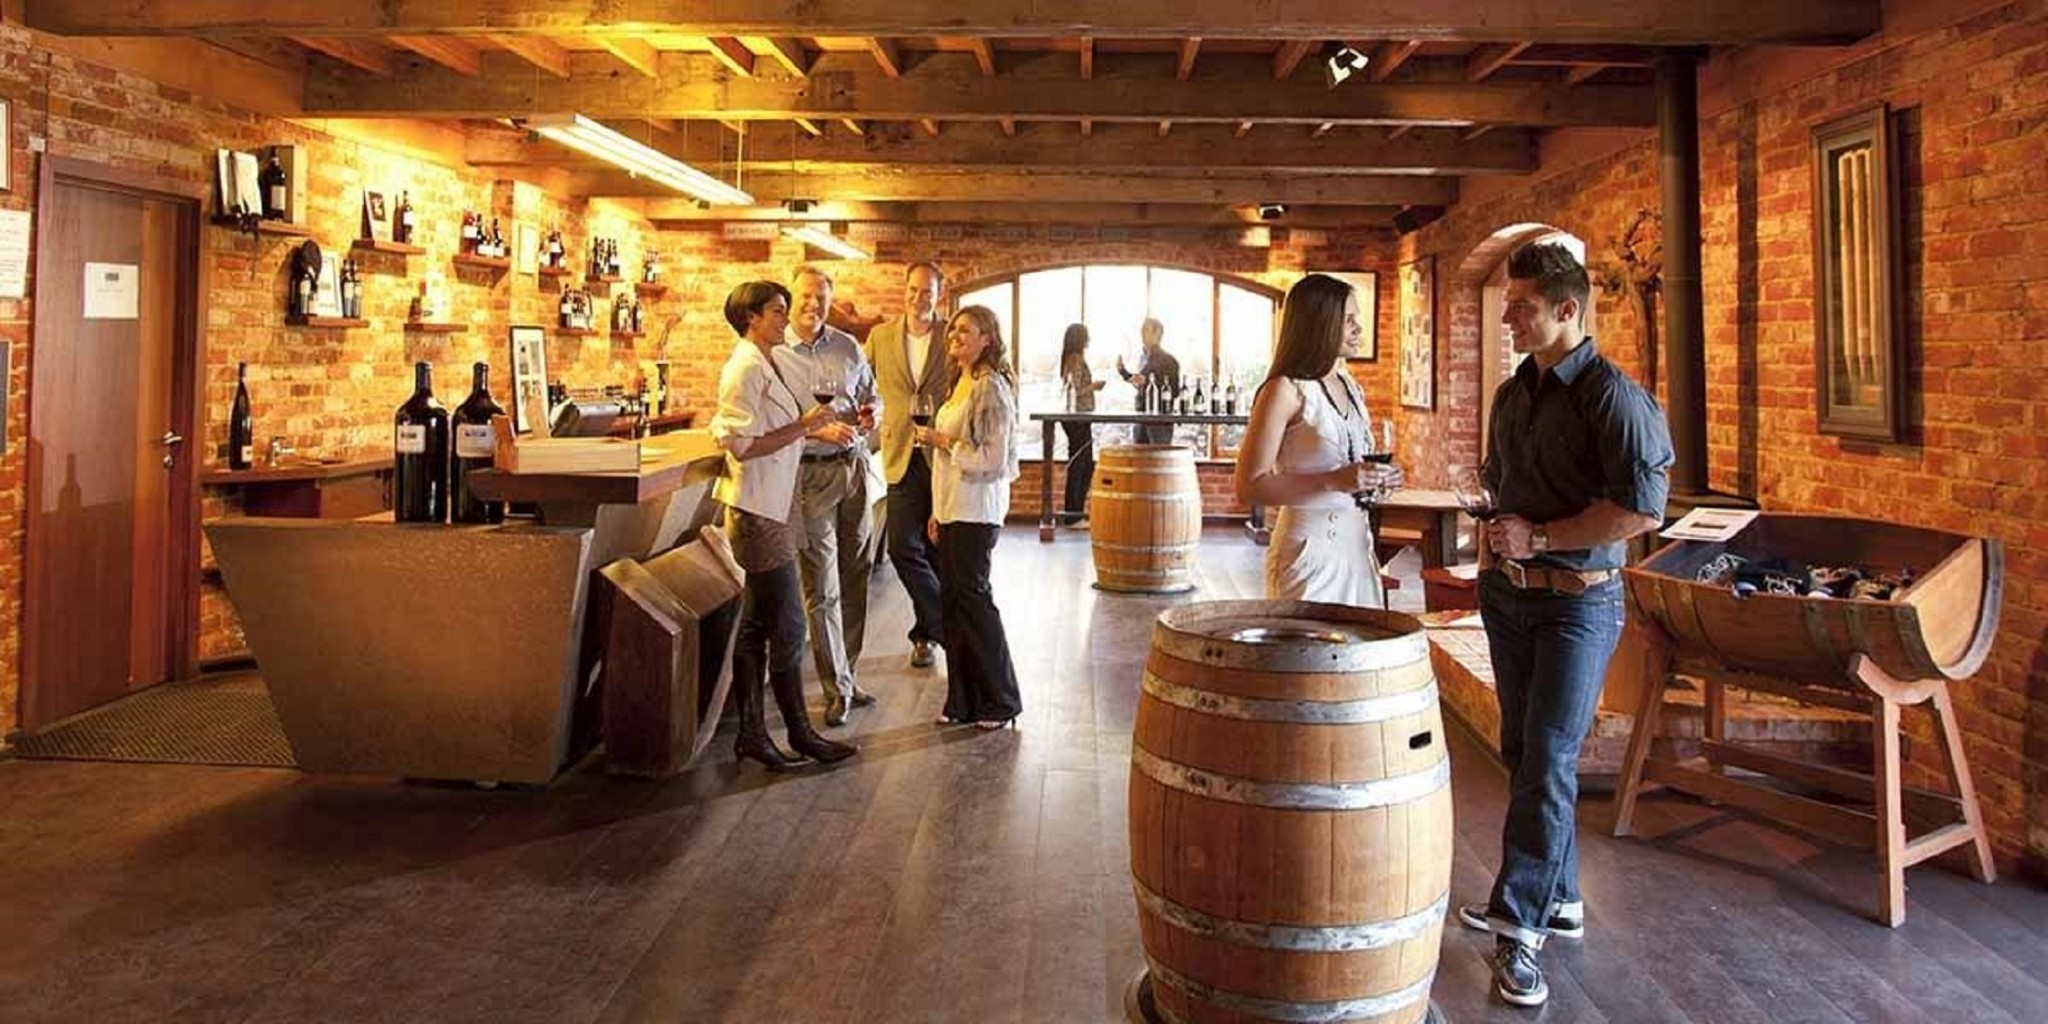 wirra_wirra_wines_cellar_door_mclaren_vale